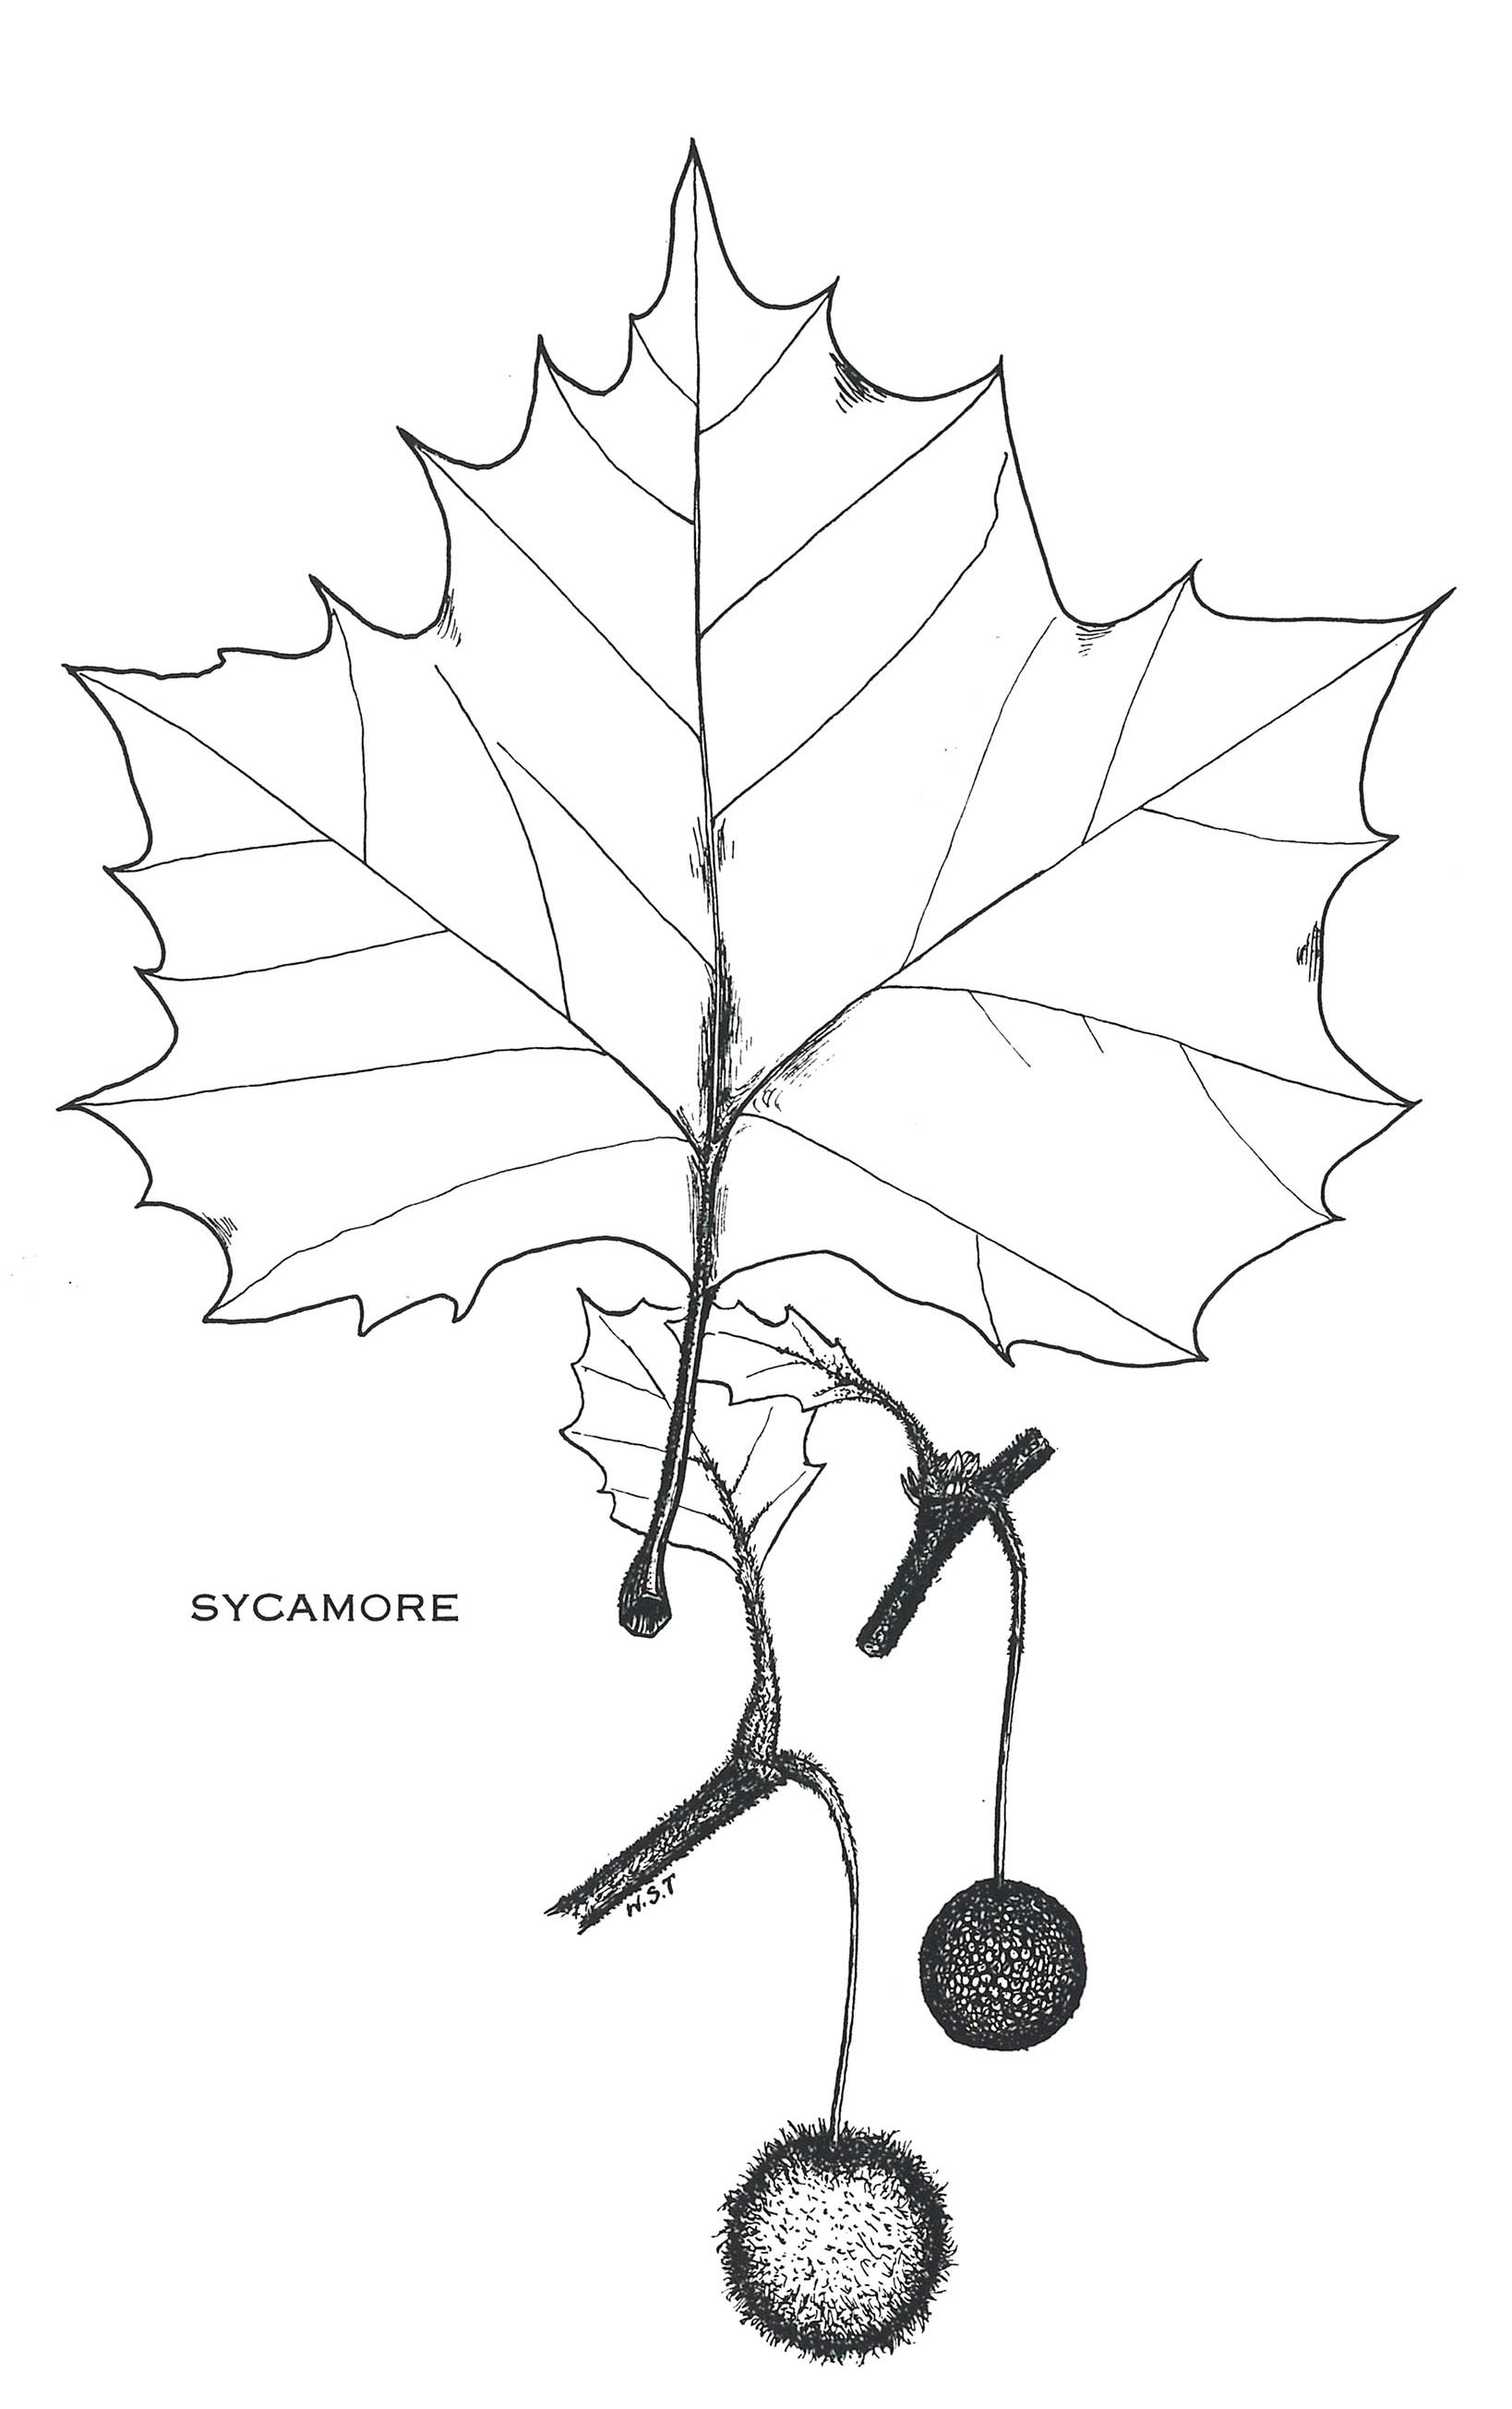 sycamore dating Welcome to sycamore arabians  sycamore was once a plantation with land grants dating back to 1694 we purchased sycamore 25 years ago and at the time the land was .